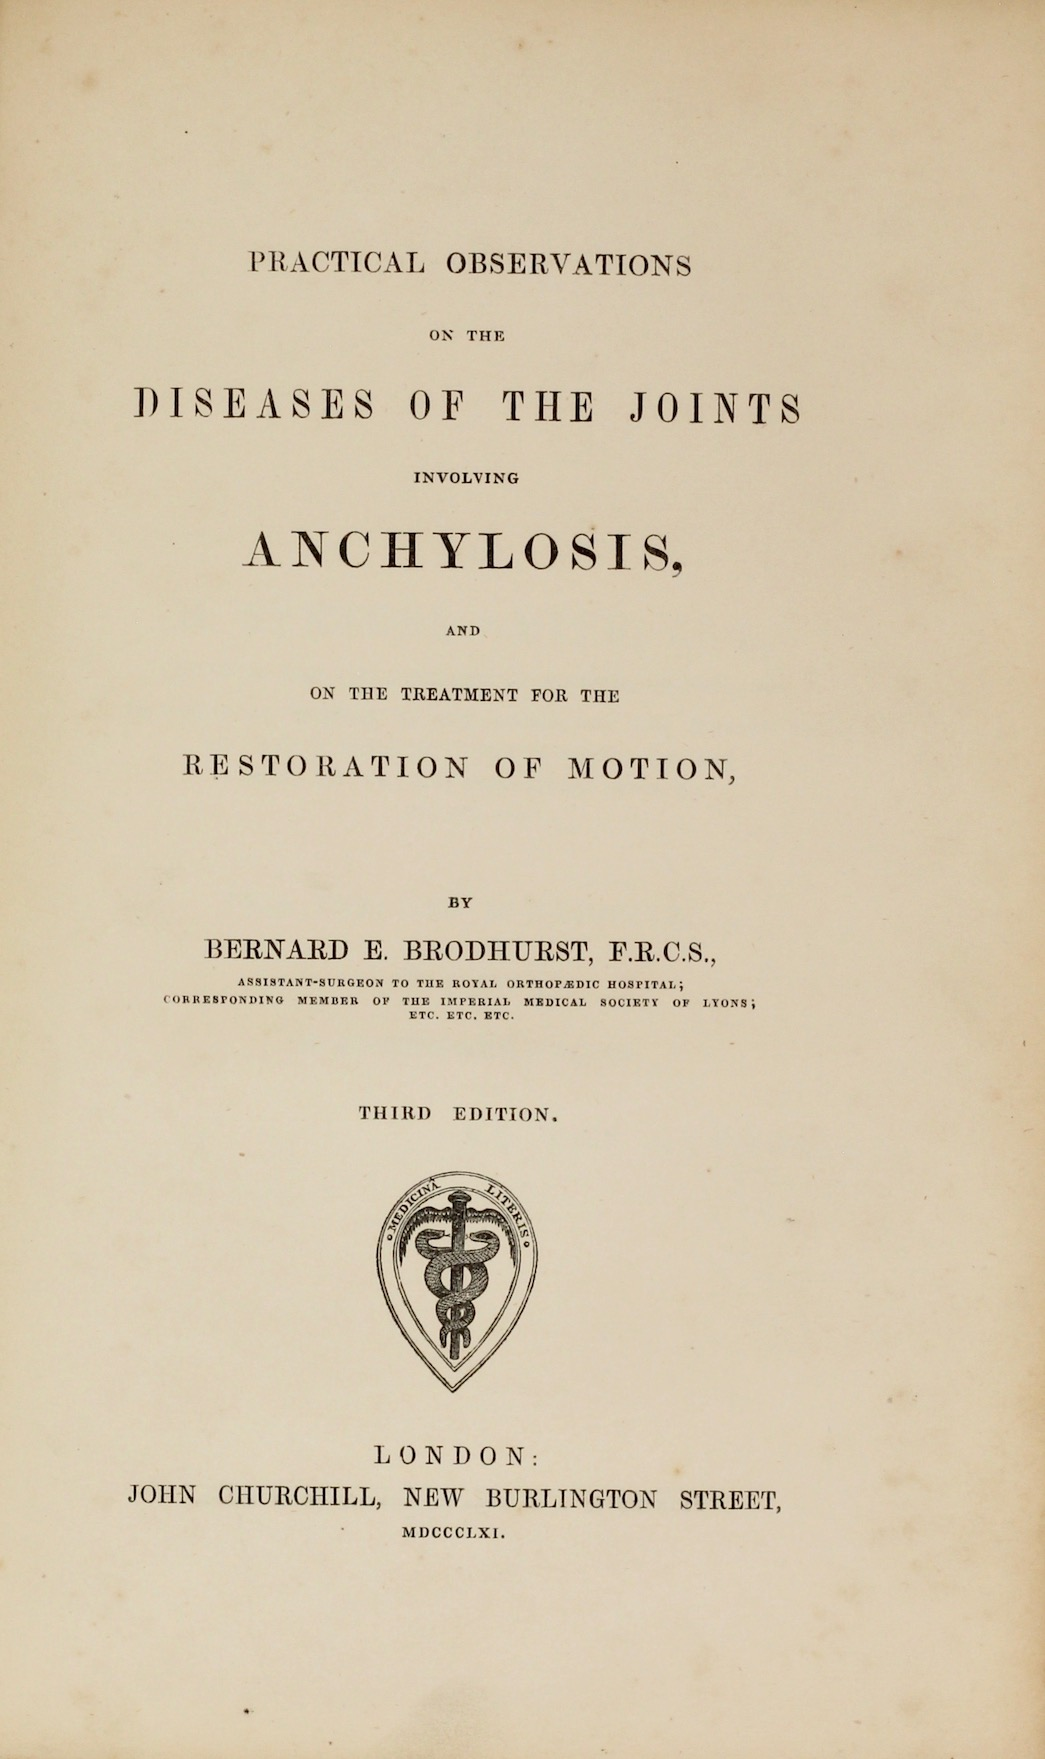 Bernard E. Brodhurst: Practical Observations on the Diseases of the Joints, c. 1865. £125